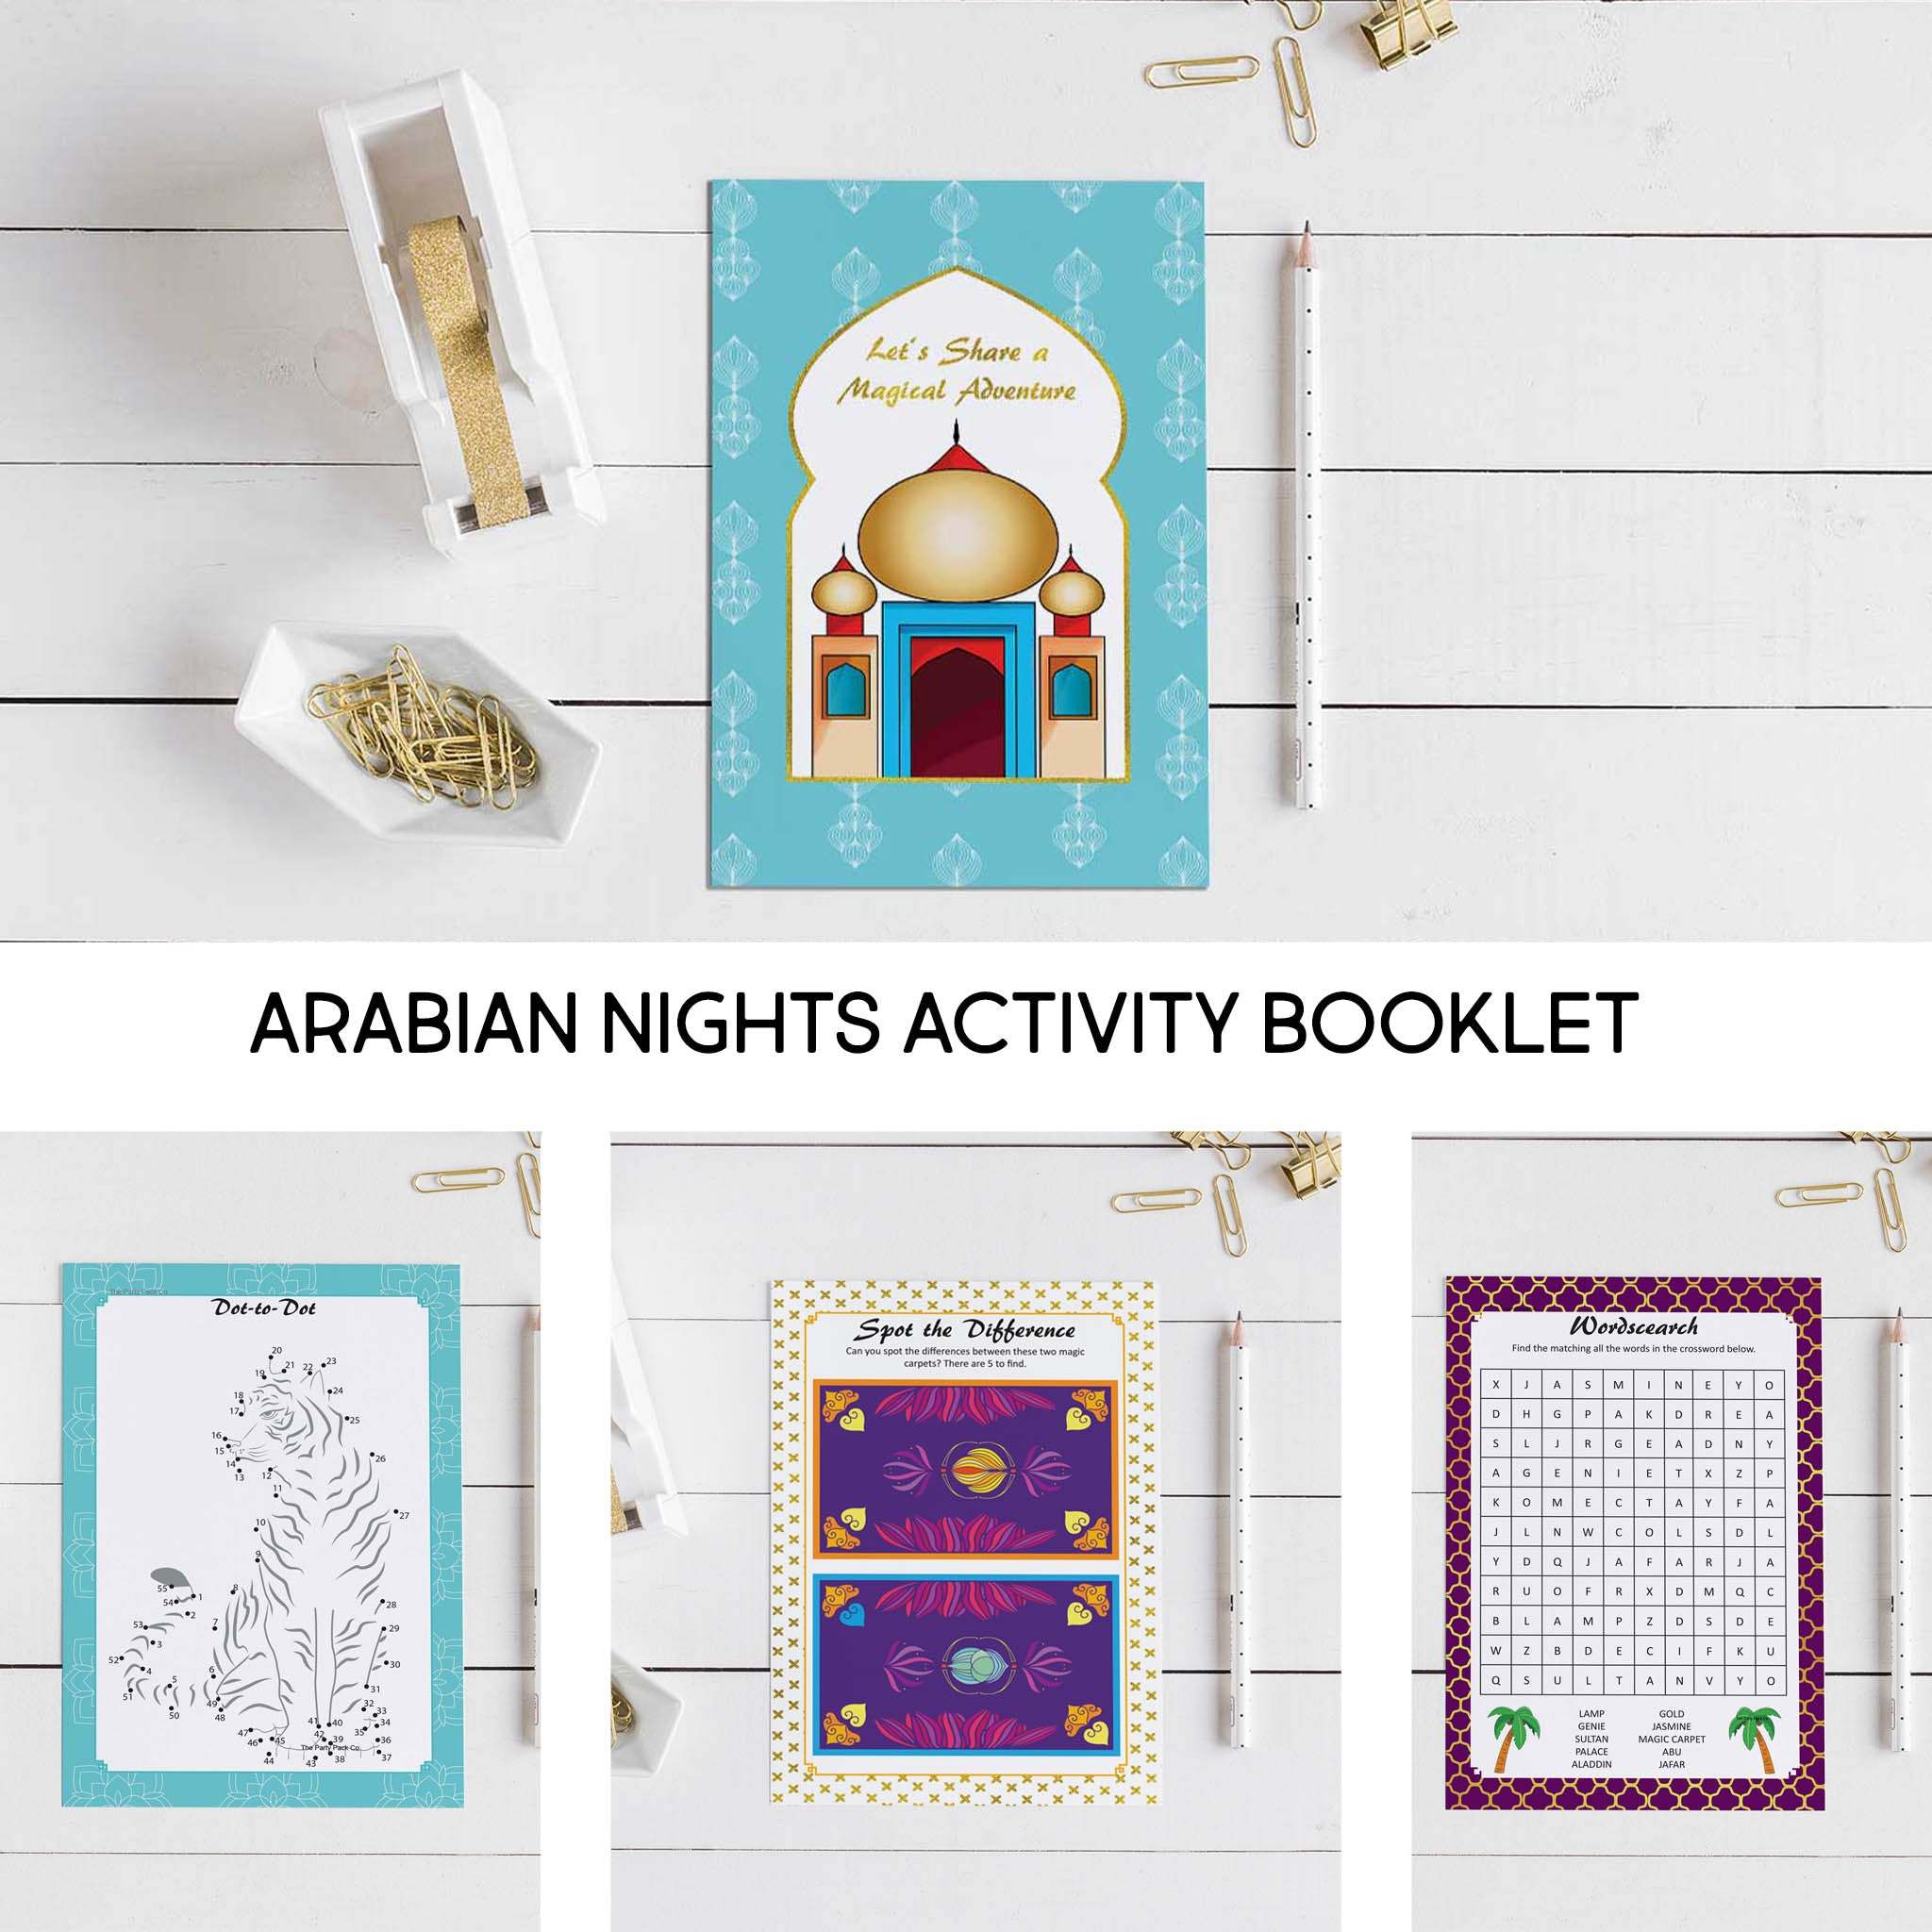 Arabian Nights Party Activity Booklet Bundle - 10 people - The Party Pack Co